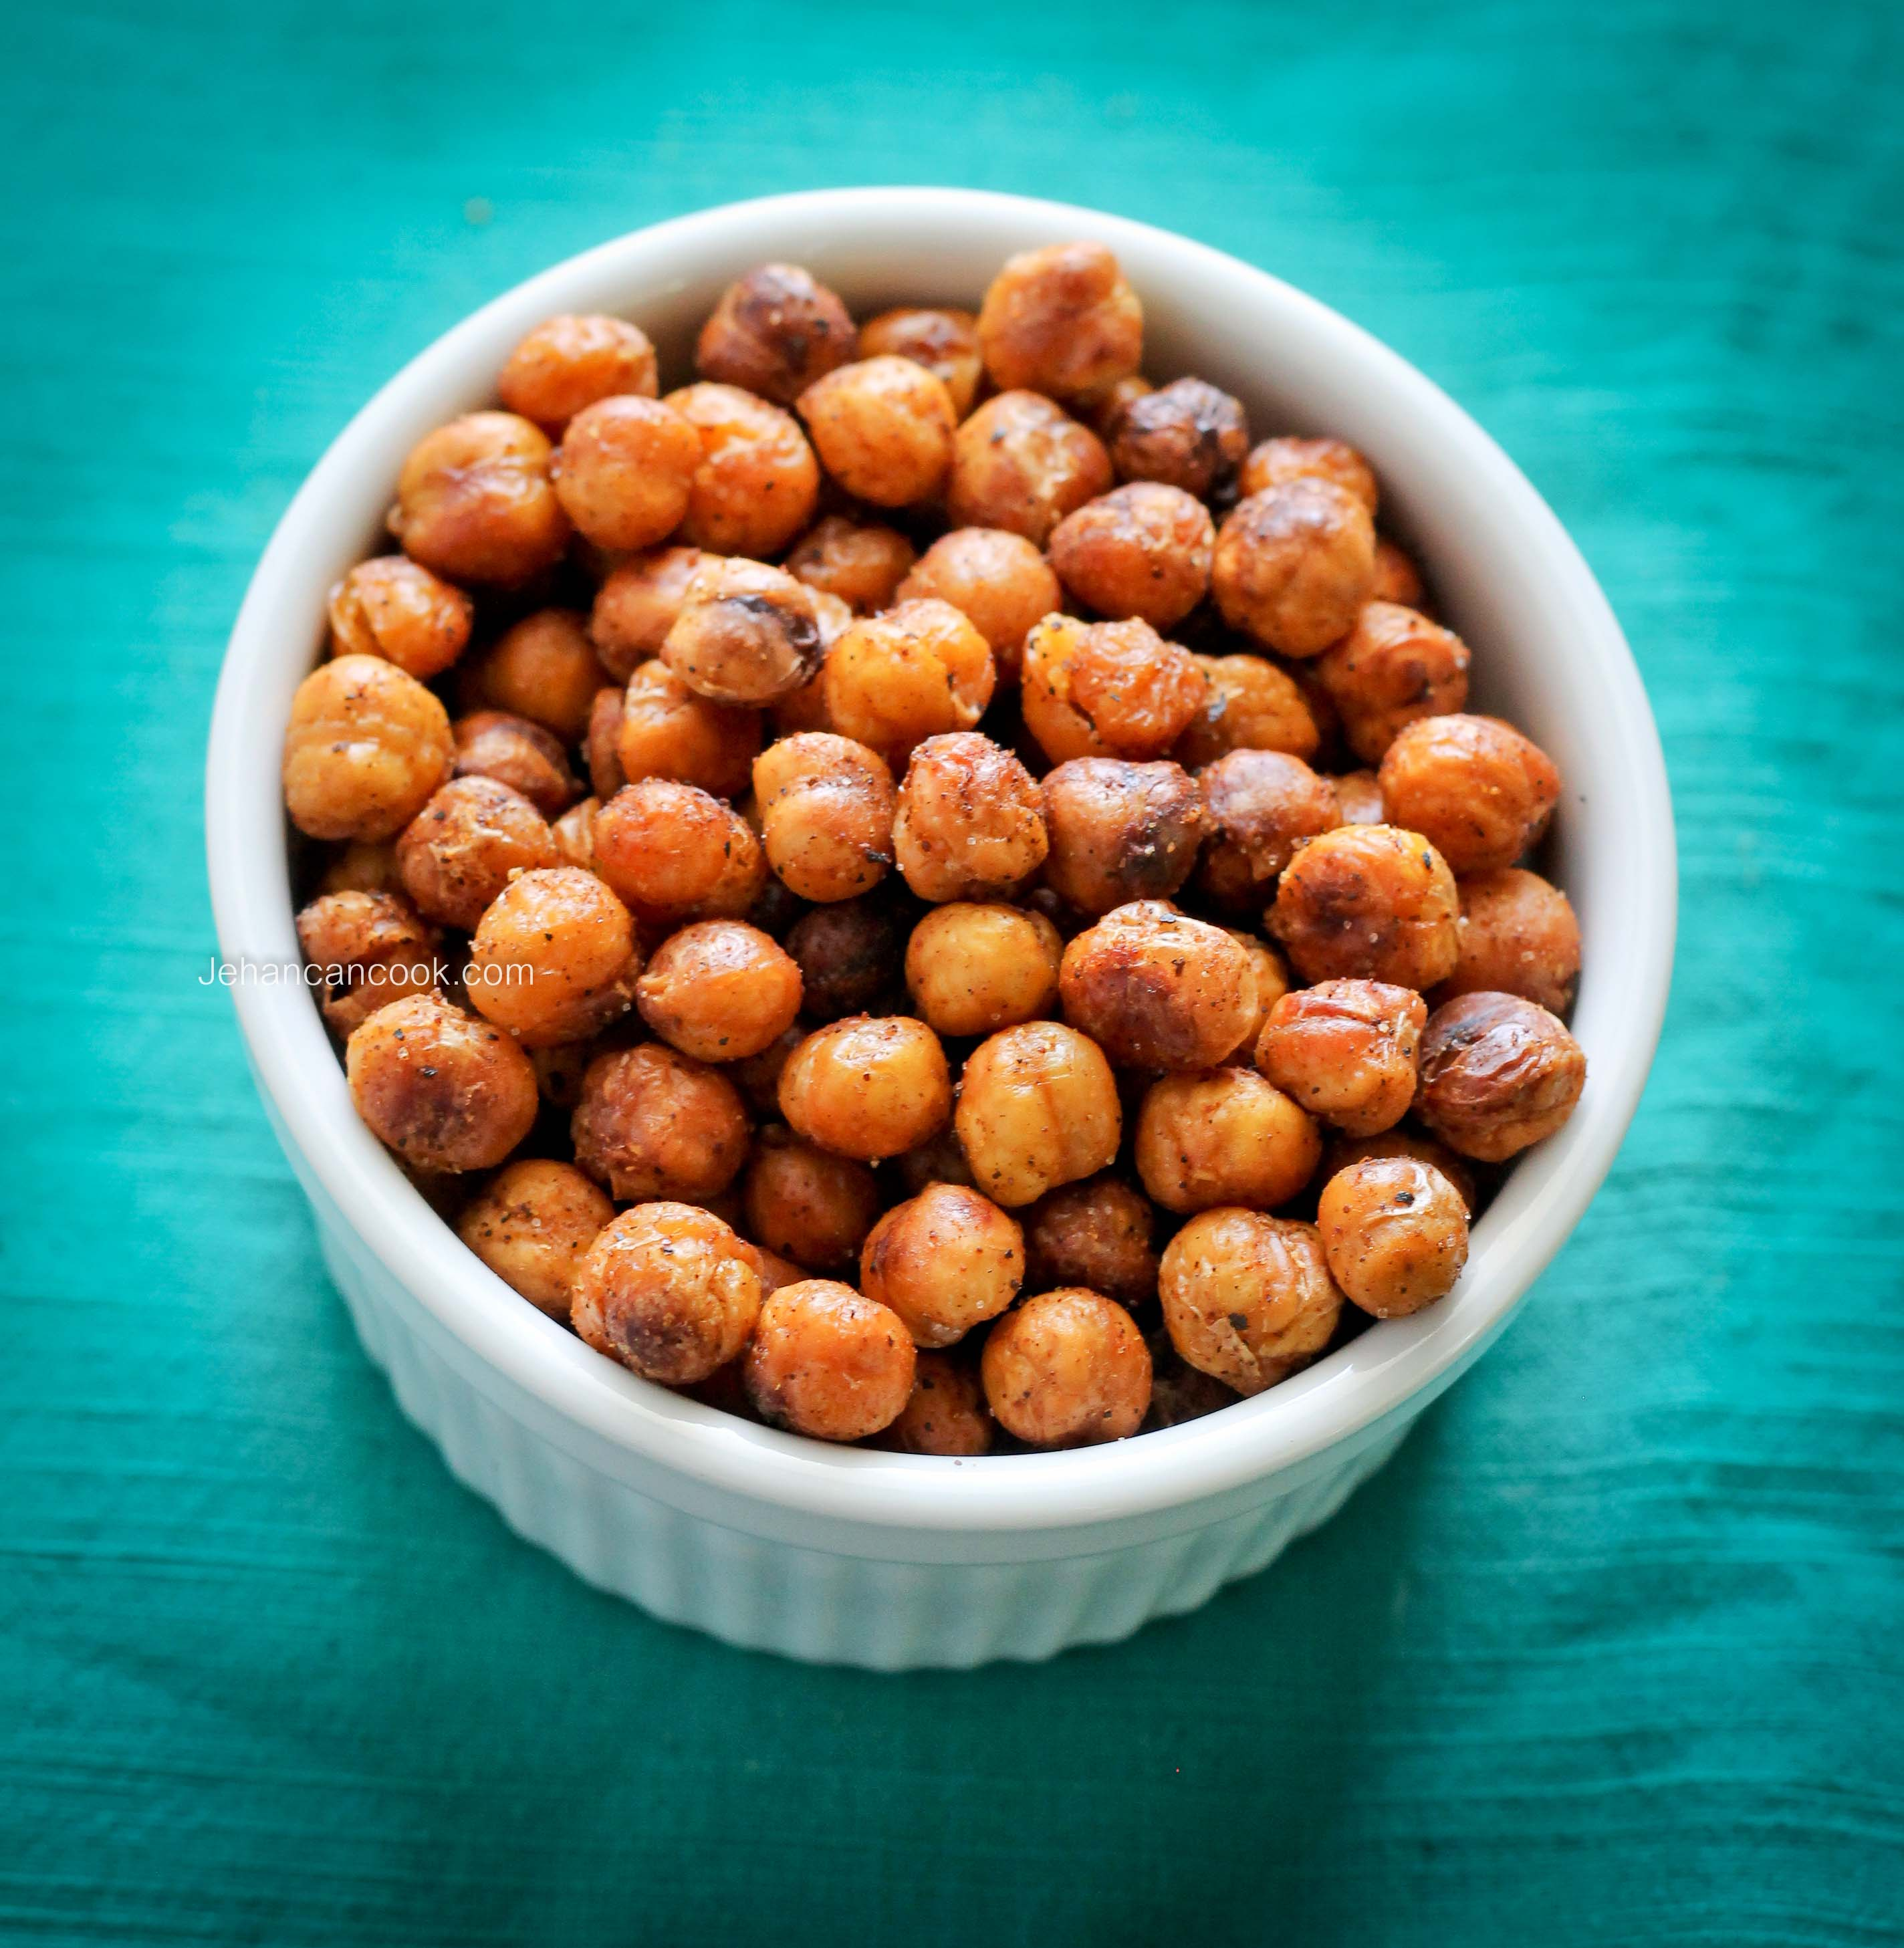 Spicy Roast Chickpea-1-5